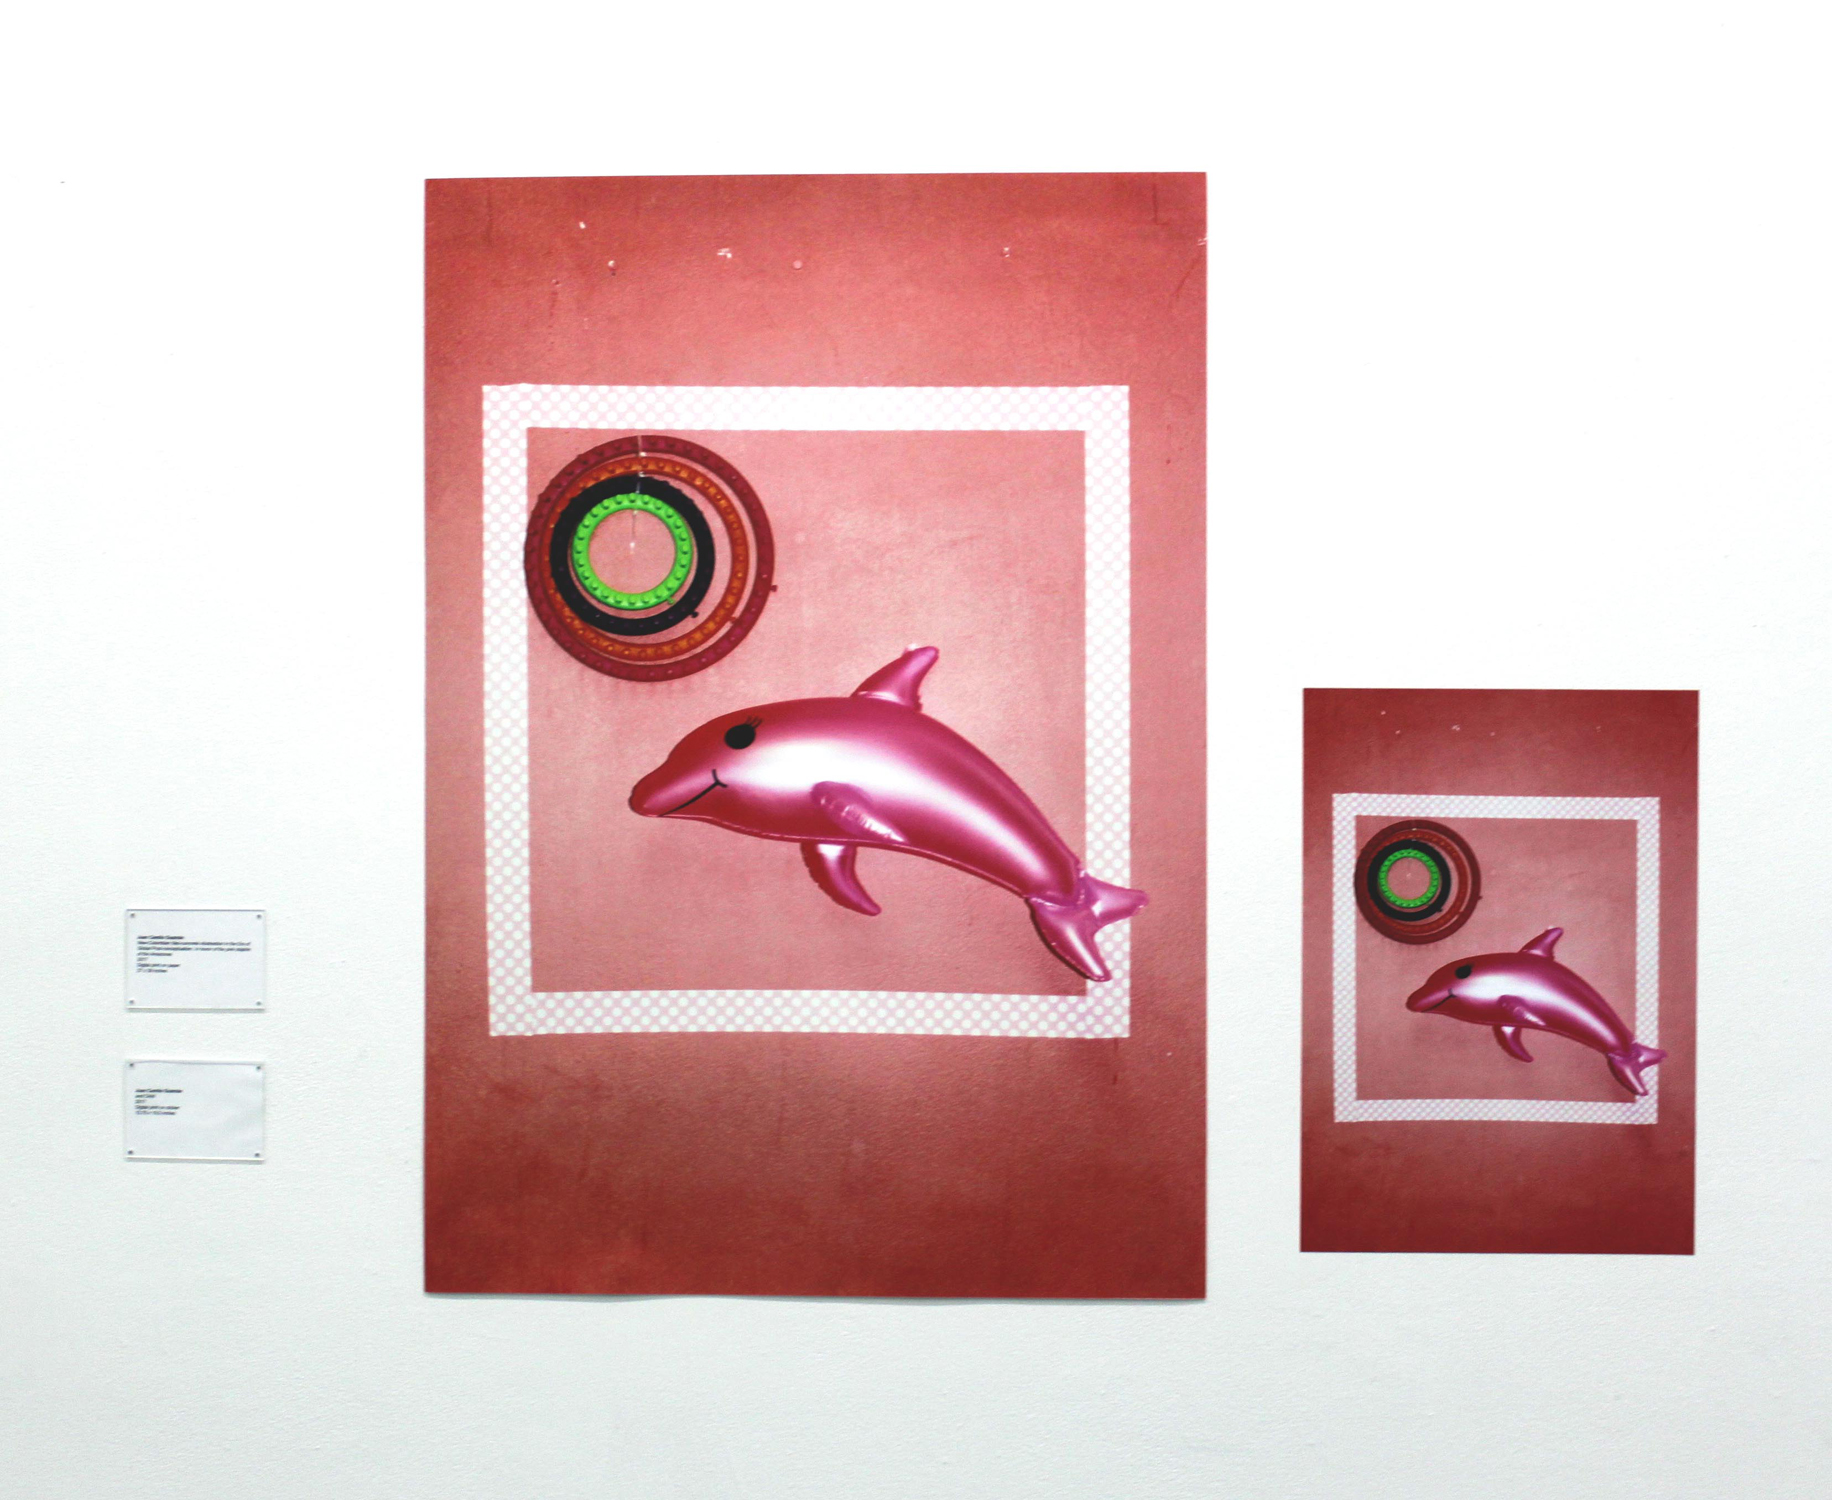 New-Colombian Neo-concrete Abstraction in the Times of Global Post-conceptualism. In Honor of the Pink Dolphin of the Amazonas (2017), Digital matte print, 27 x 39 inches;  And Child (2017) Digital print on sticker, 13.75 x 19.5 inches